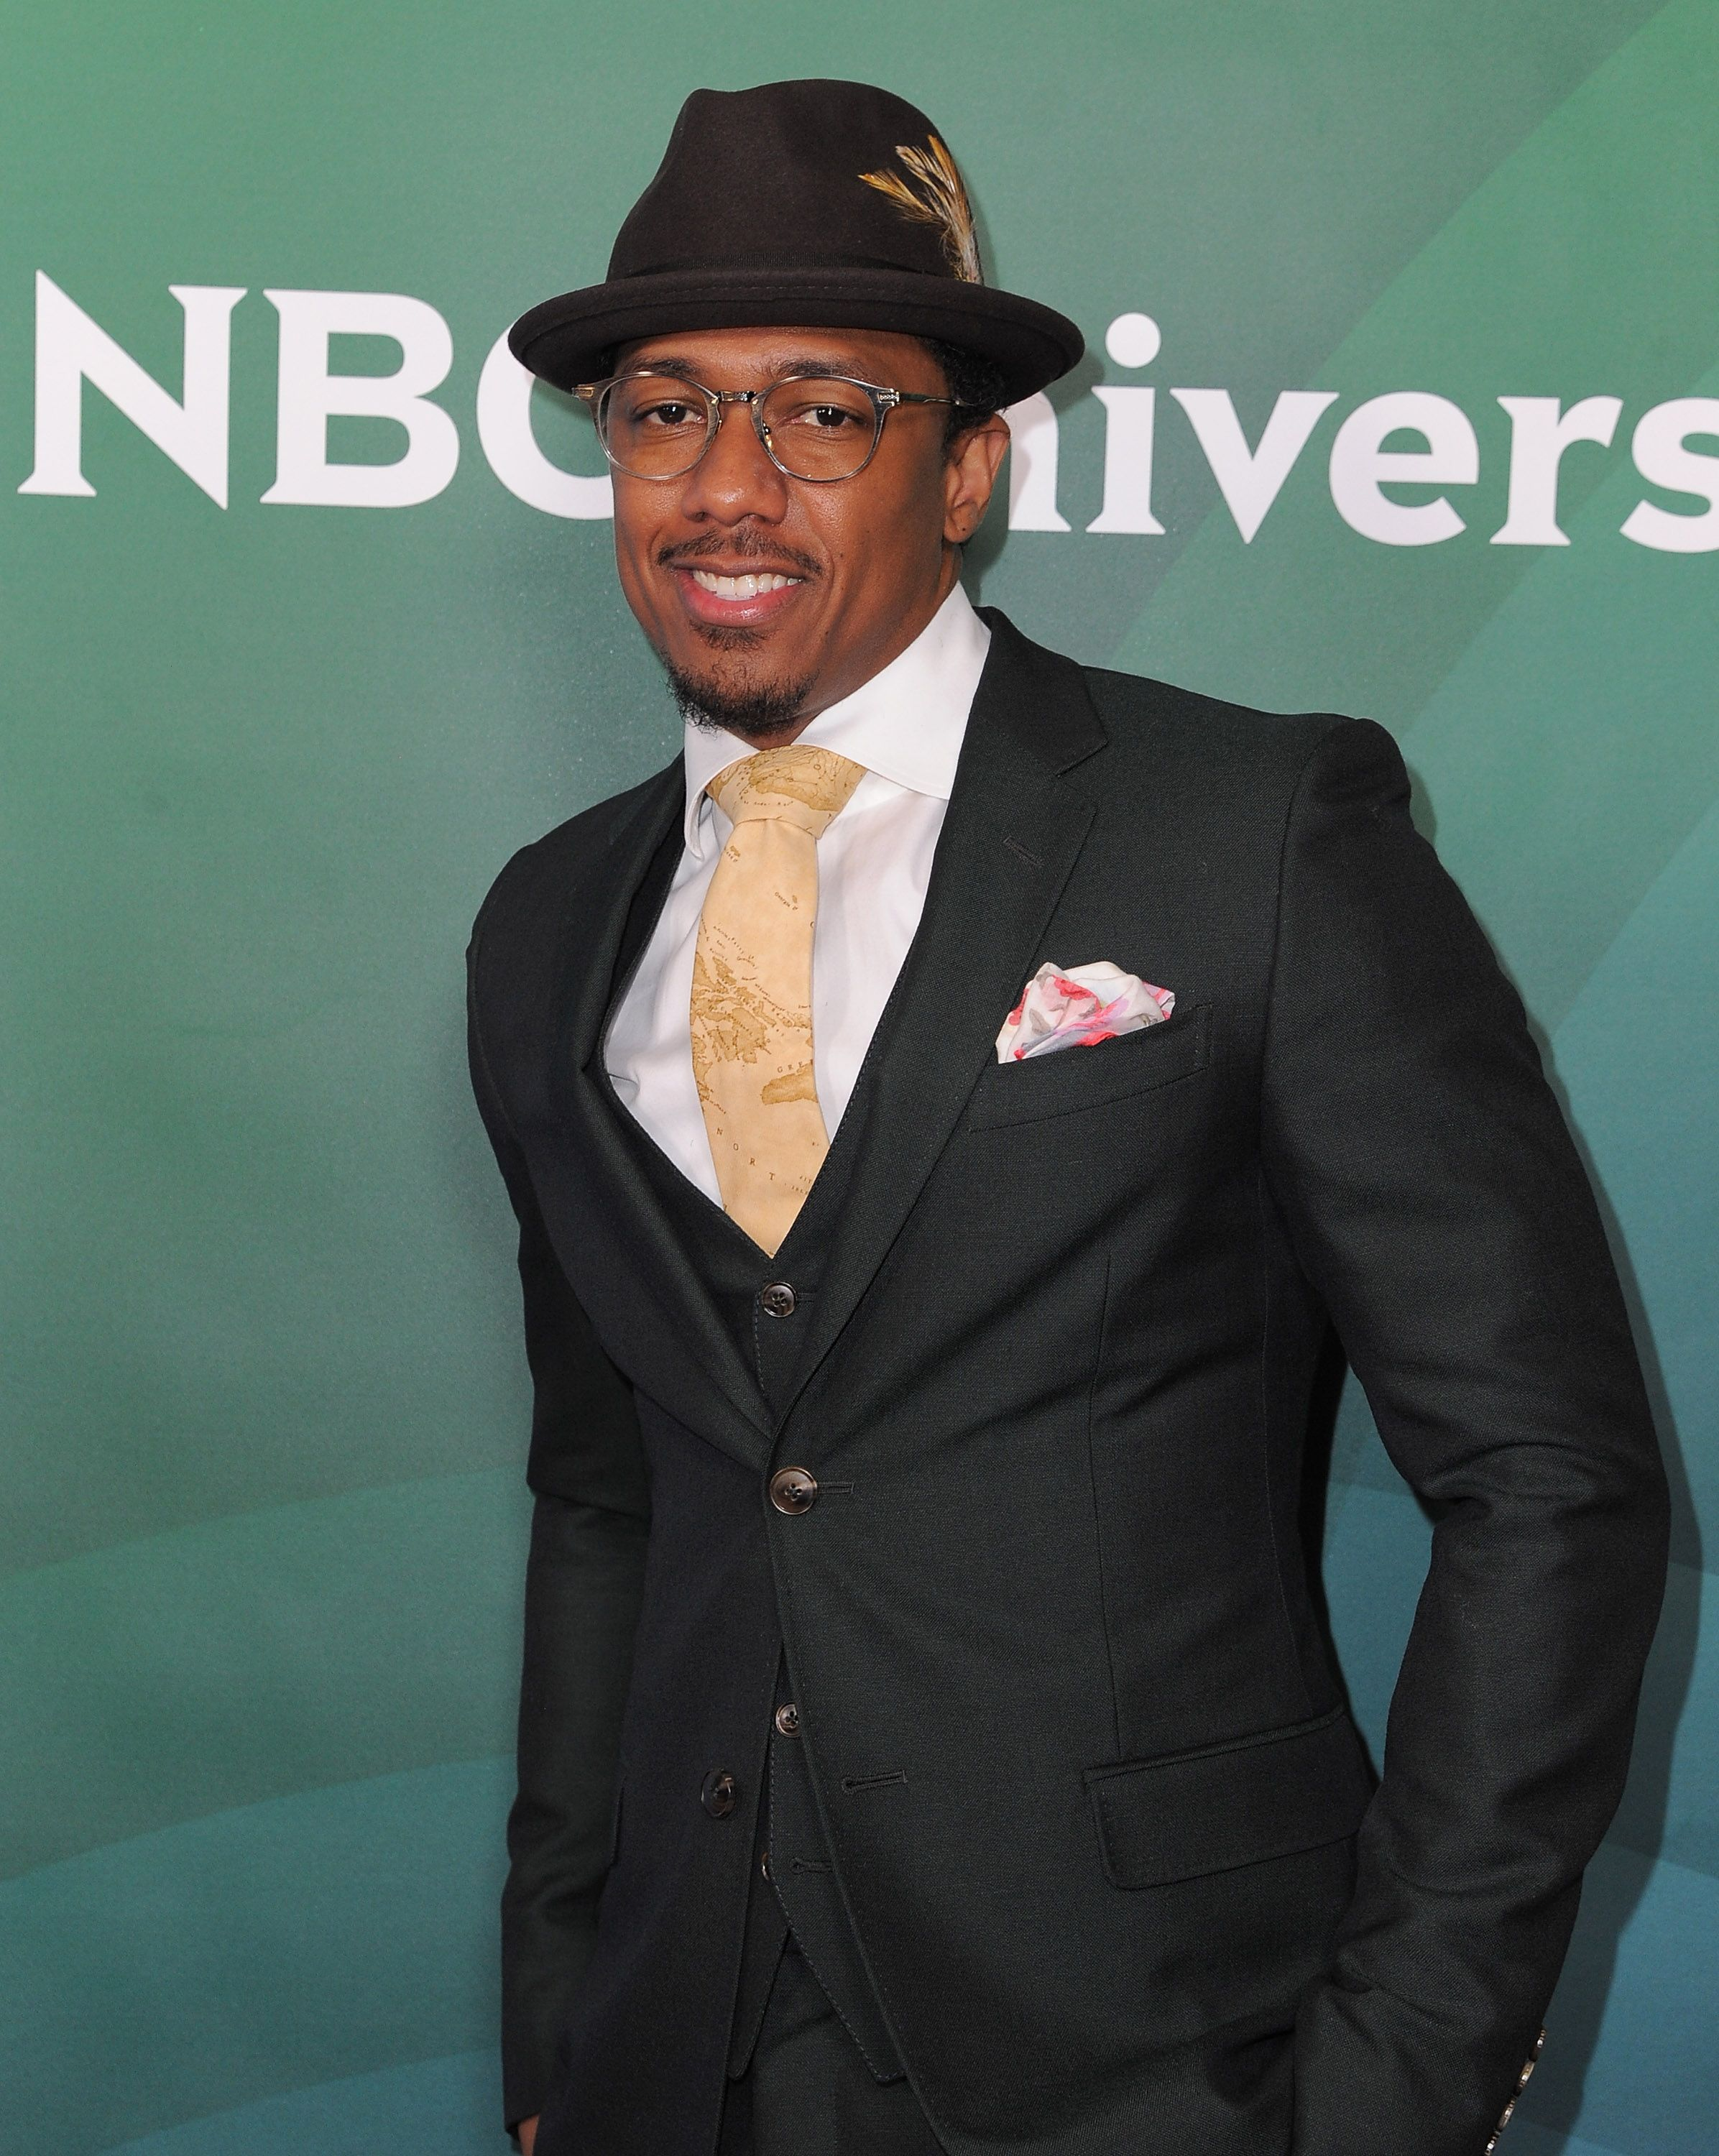 Nick Cannon at the Winter TCA Tour on January 14, 2016 in Pasadena. | Photo: Getty Images